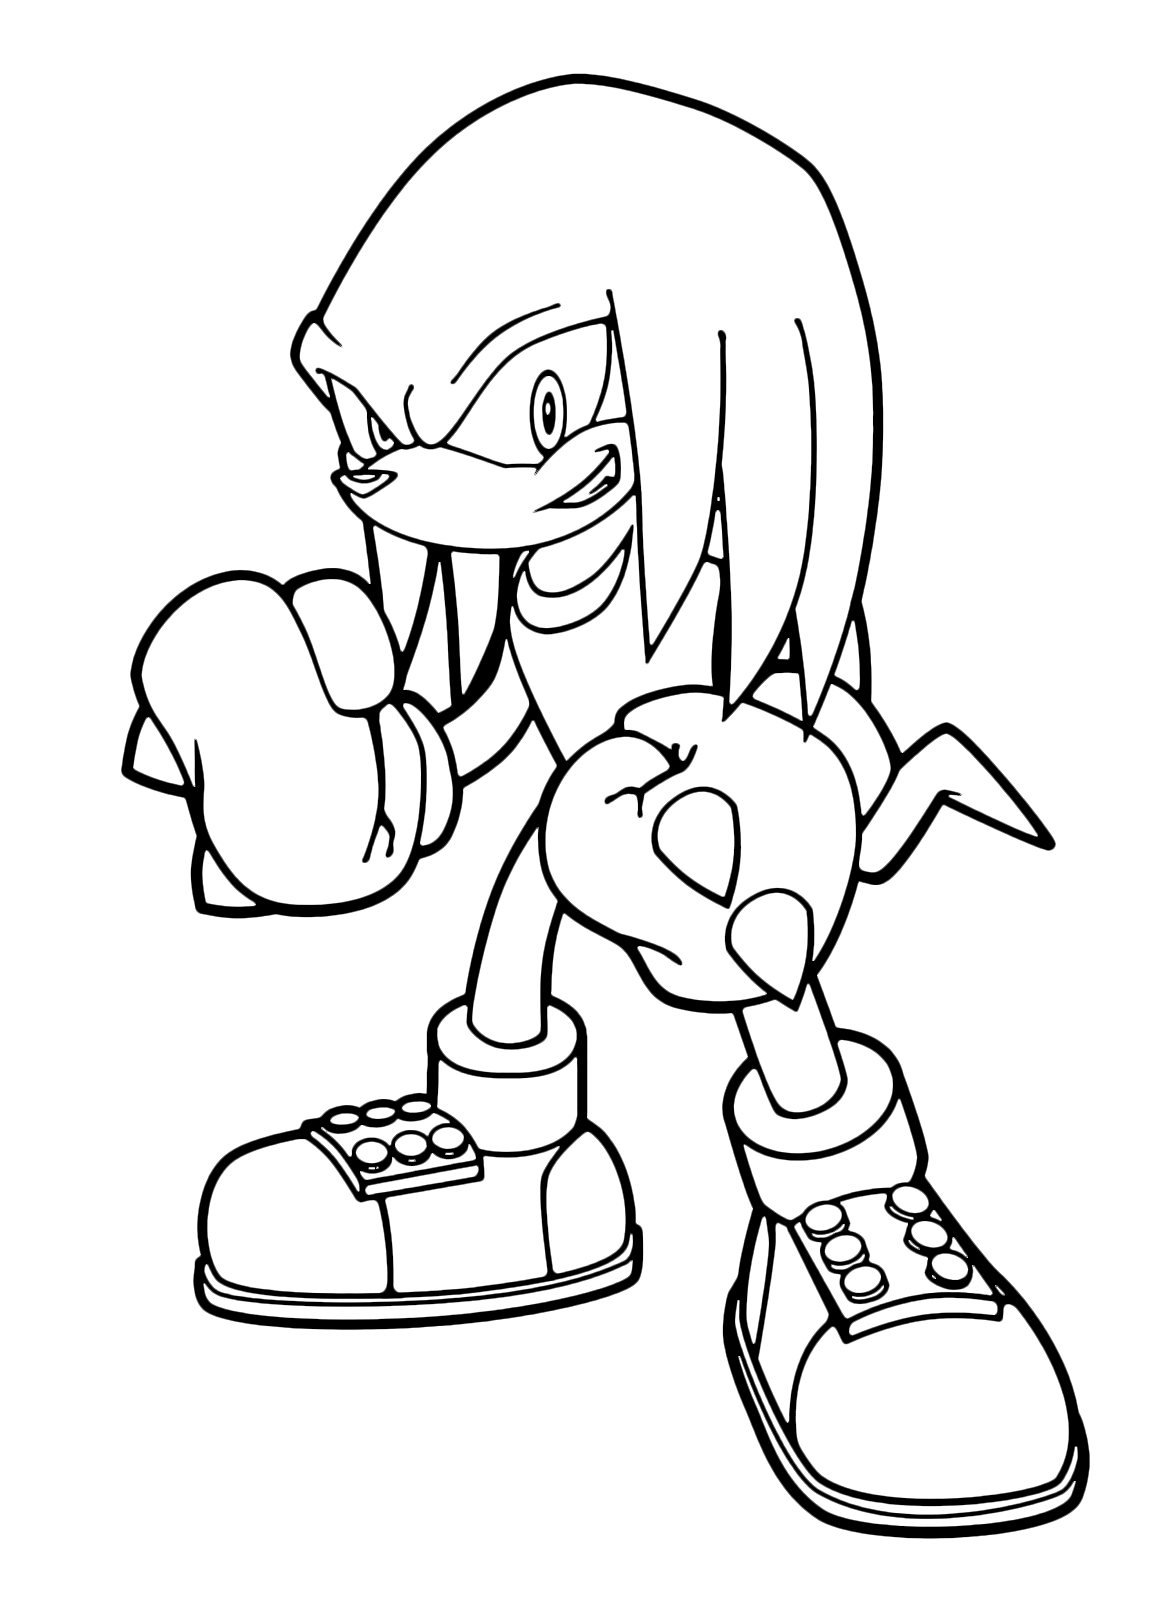 Sonic boom knuckles the echidna con i suoi pugni spinosi for Sonic and knuckles coloring pages